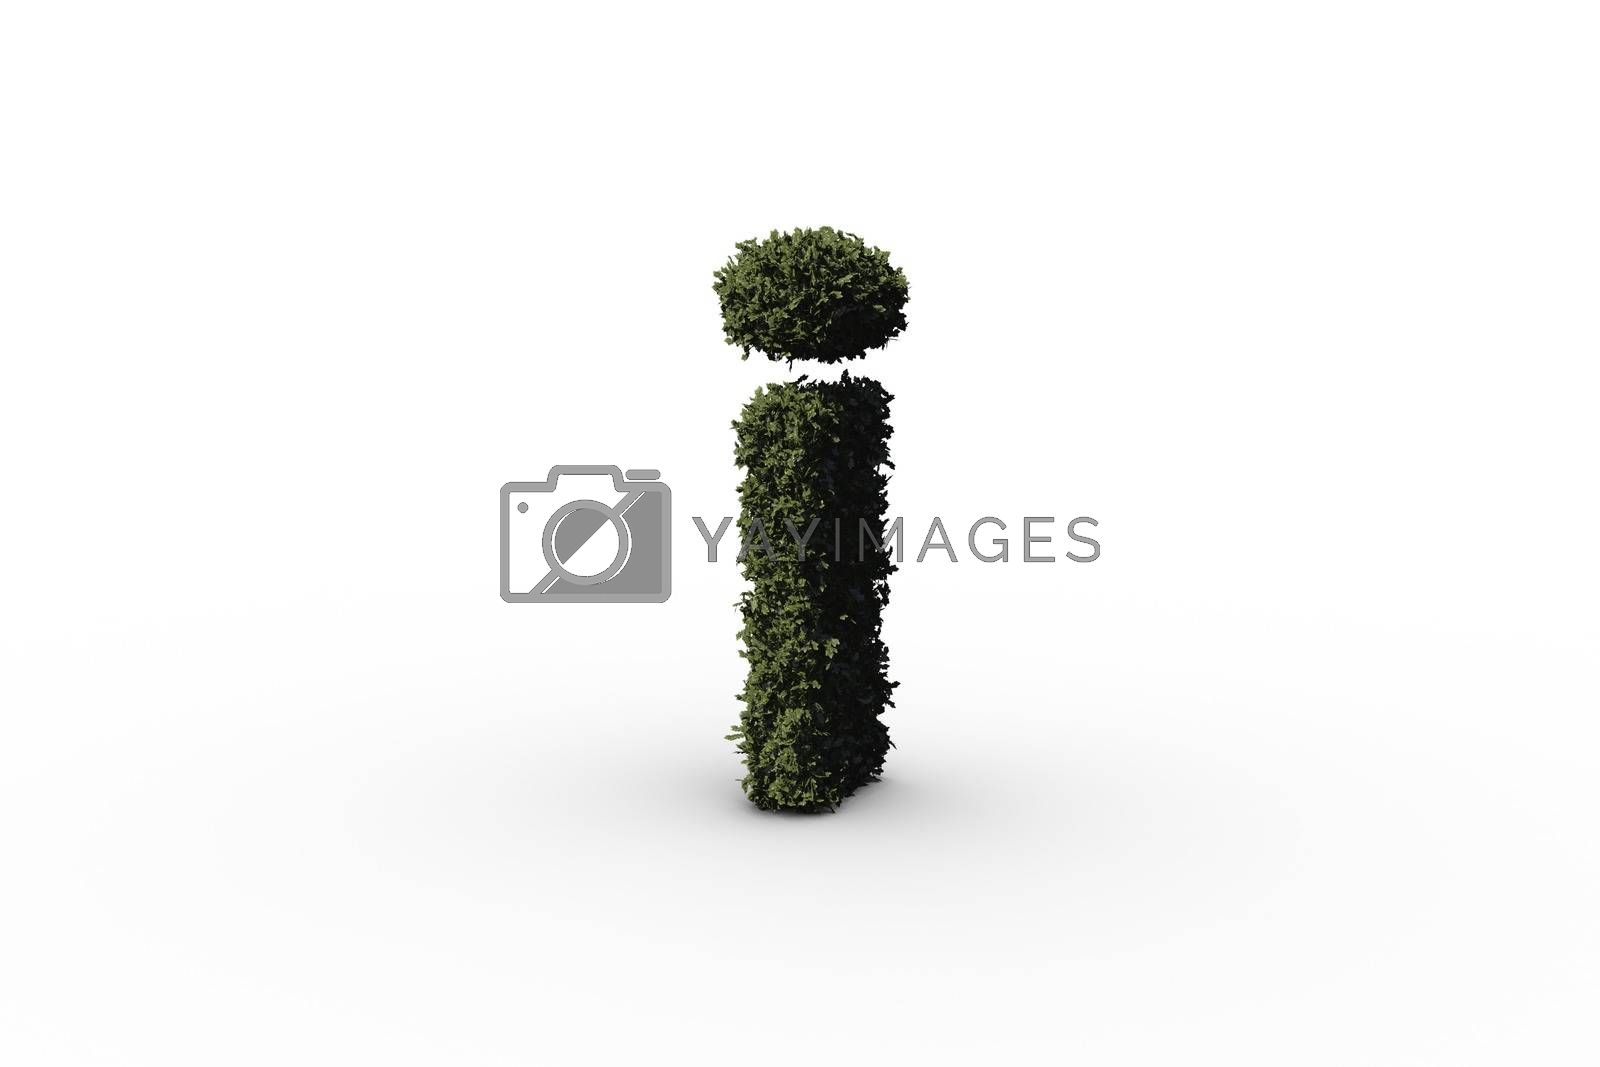 Royalty free image of Lower case letter i made of leaves by Wavebreakmedia